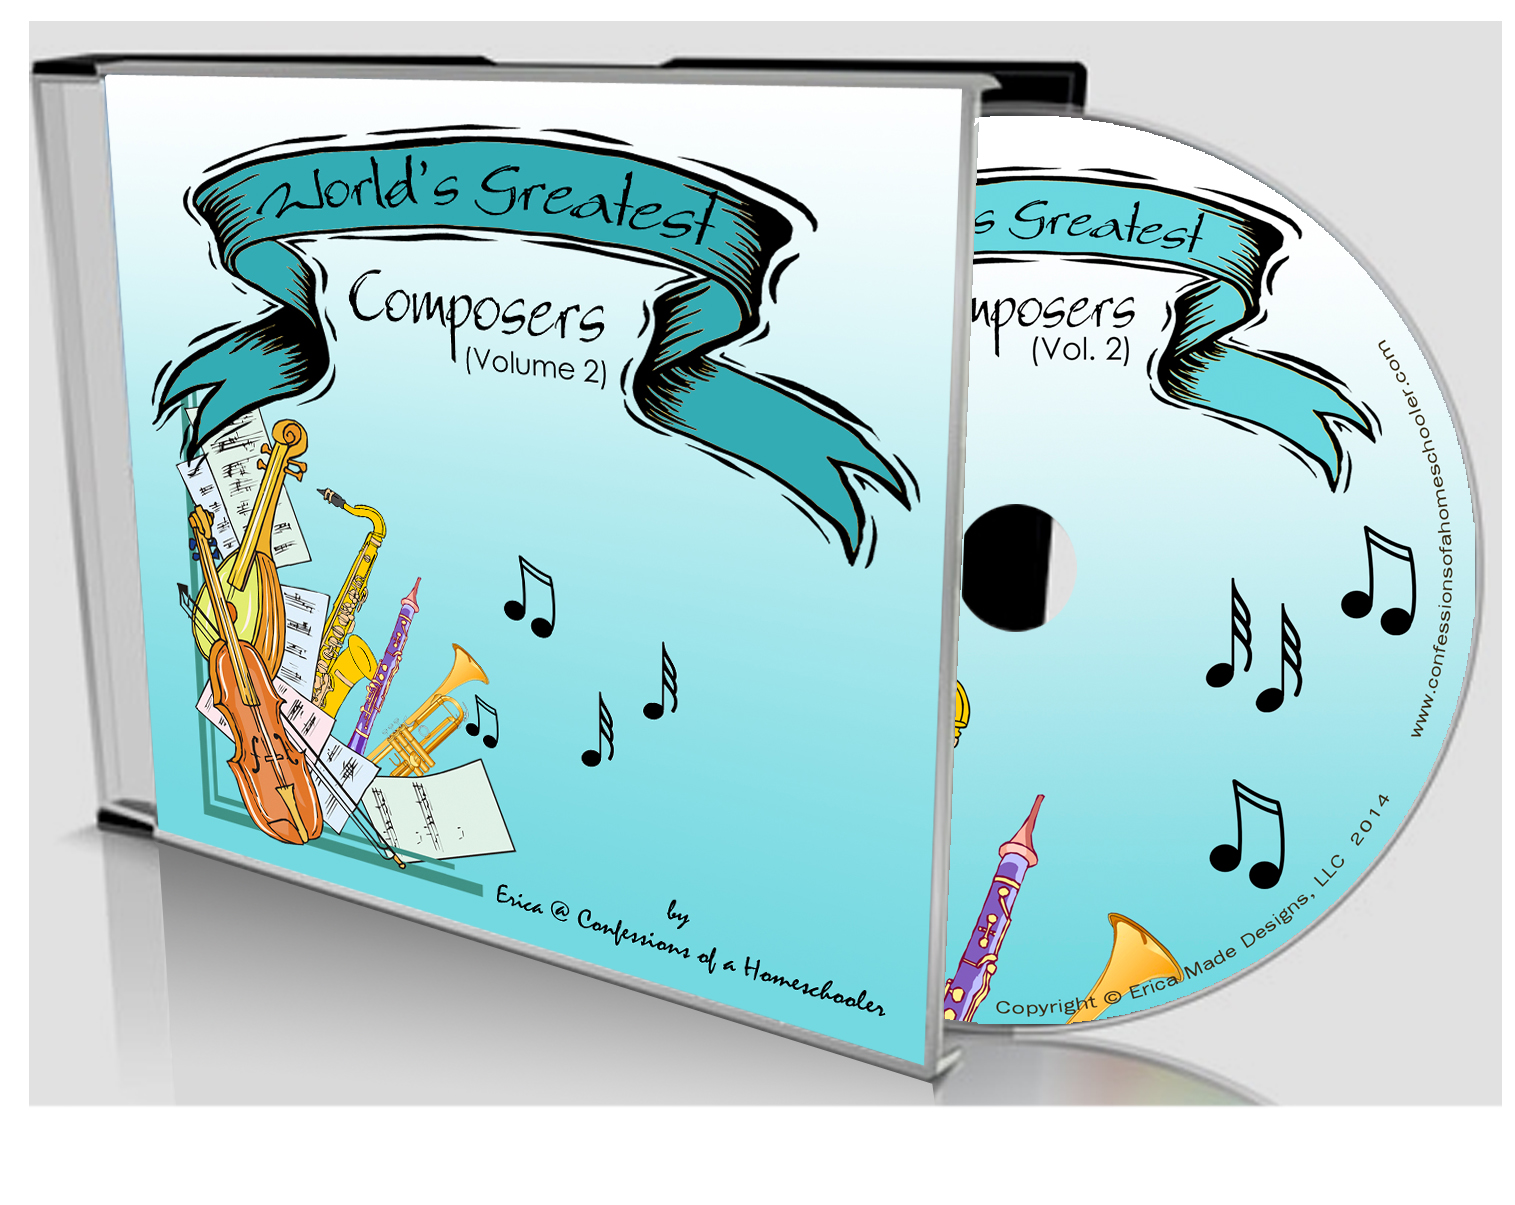 World's Greatest Composers Vol 2 - CD